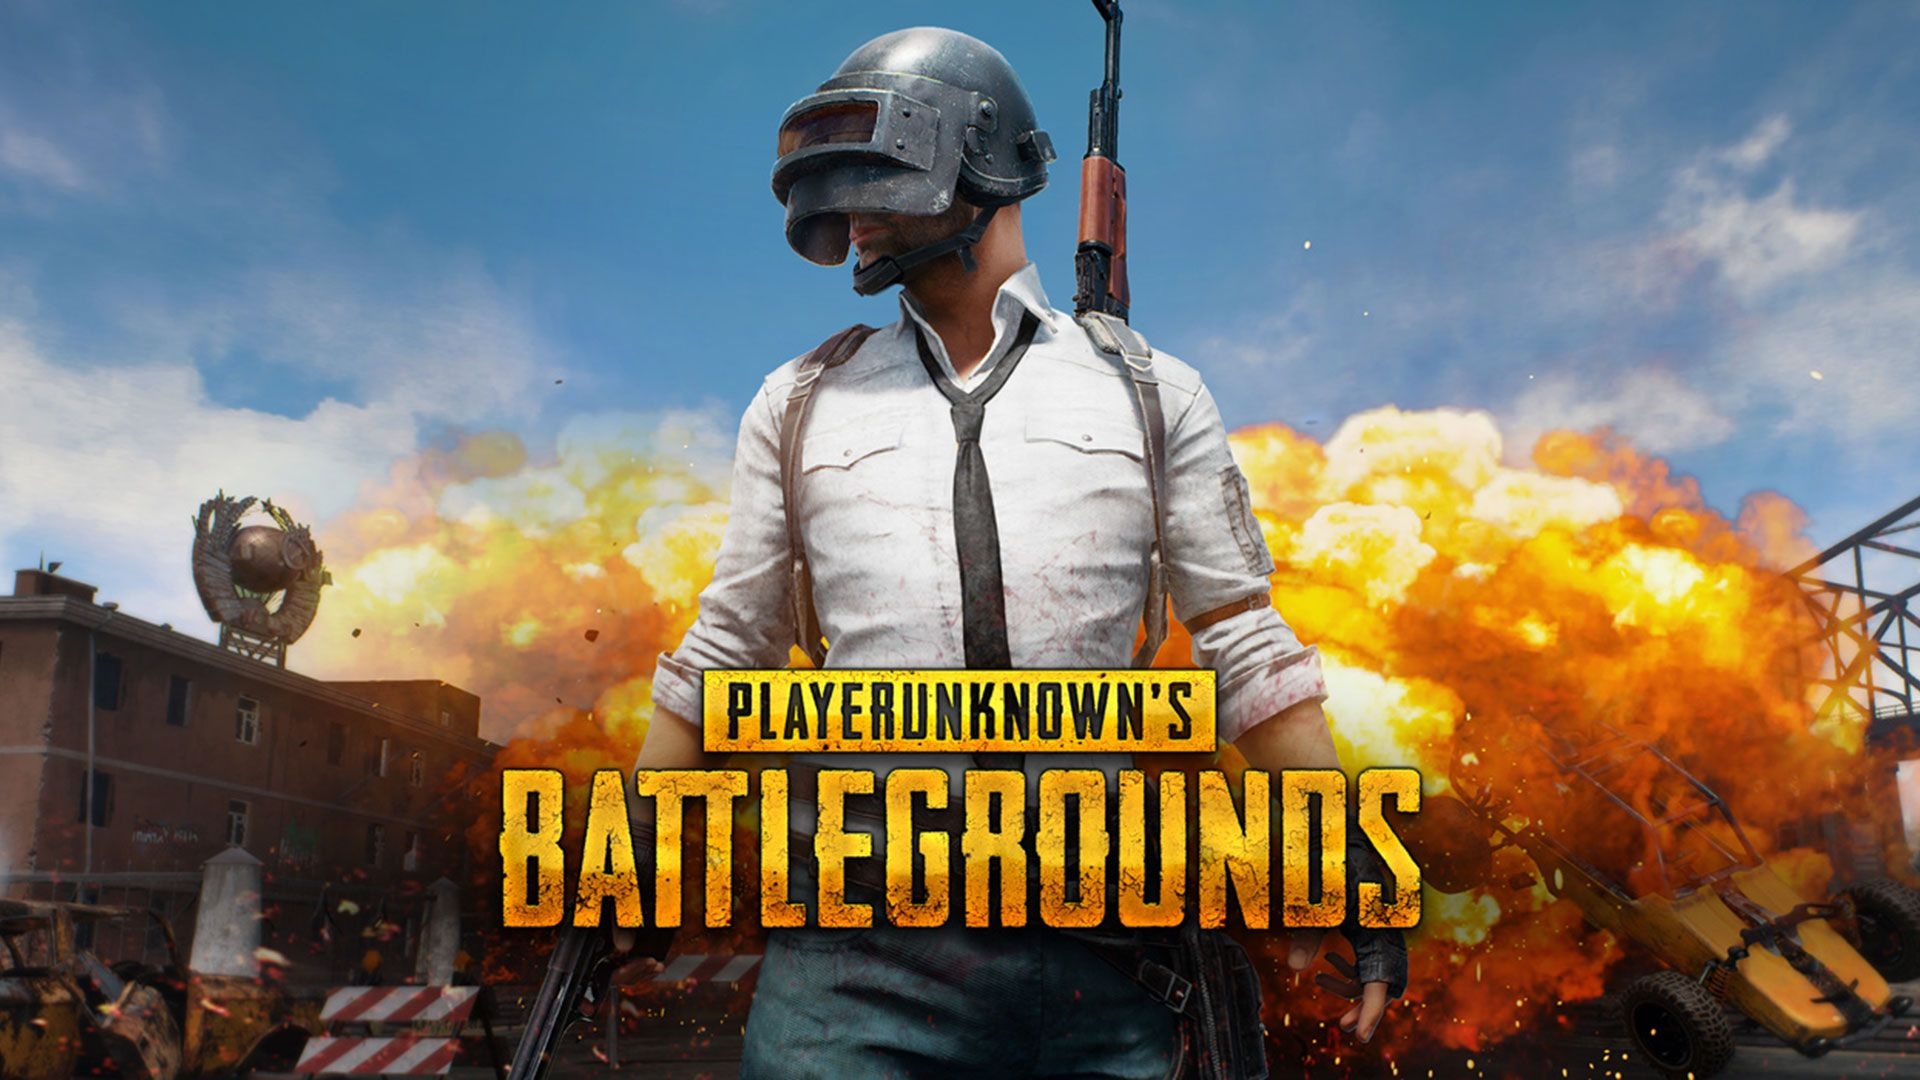 Pubg Game Hd Wallpaper Download: Pubg Wallpapers Full Hd On Wallpaper 1080p HD